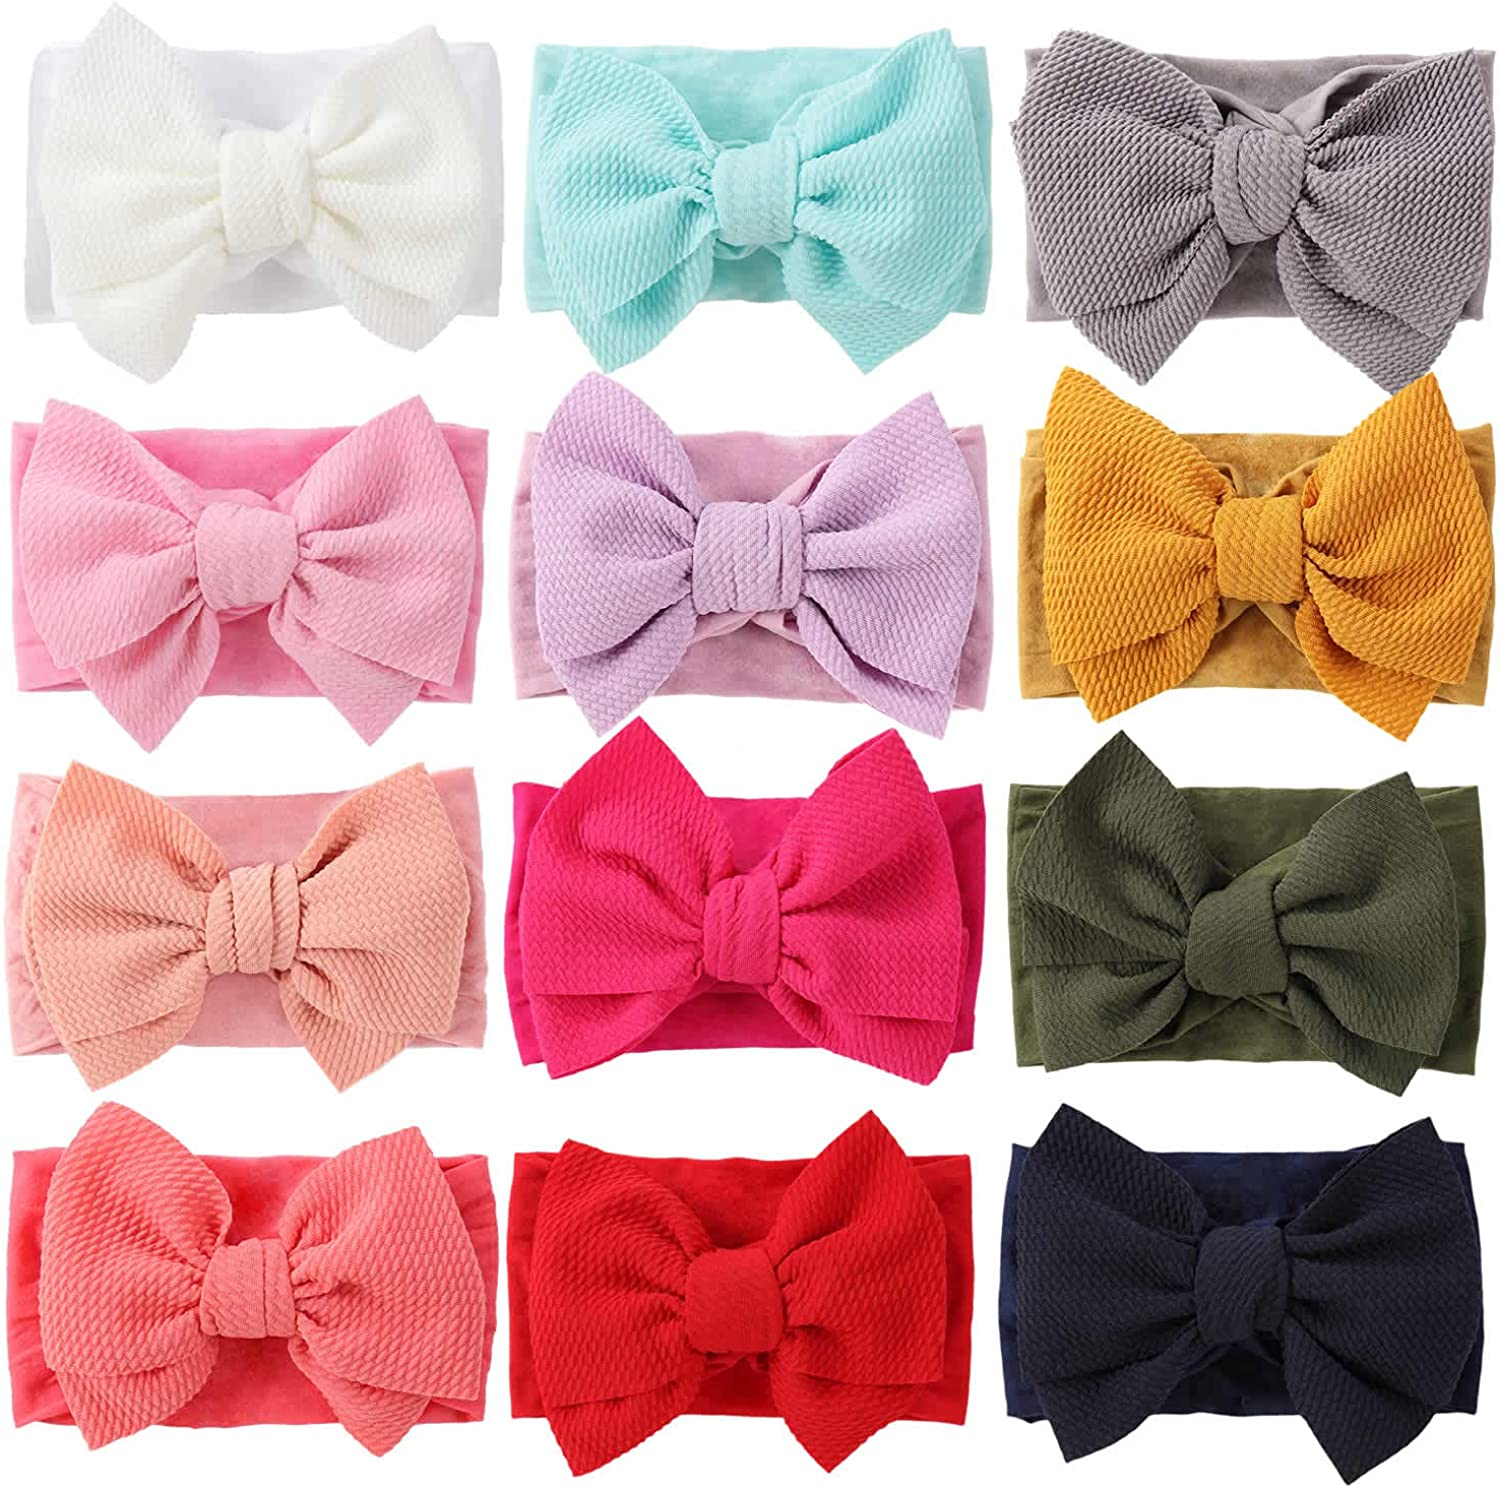 Cinaci 12 Pack Solid Stretchy Nylon Headbands with Big Bow Hair Accessories Wide Headwraps for Baby Girls Infants Toddlers Kids